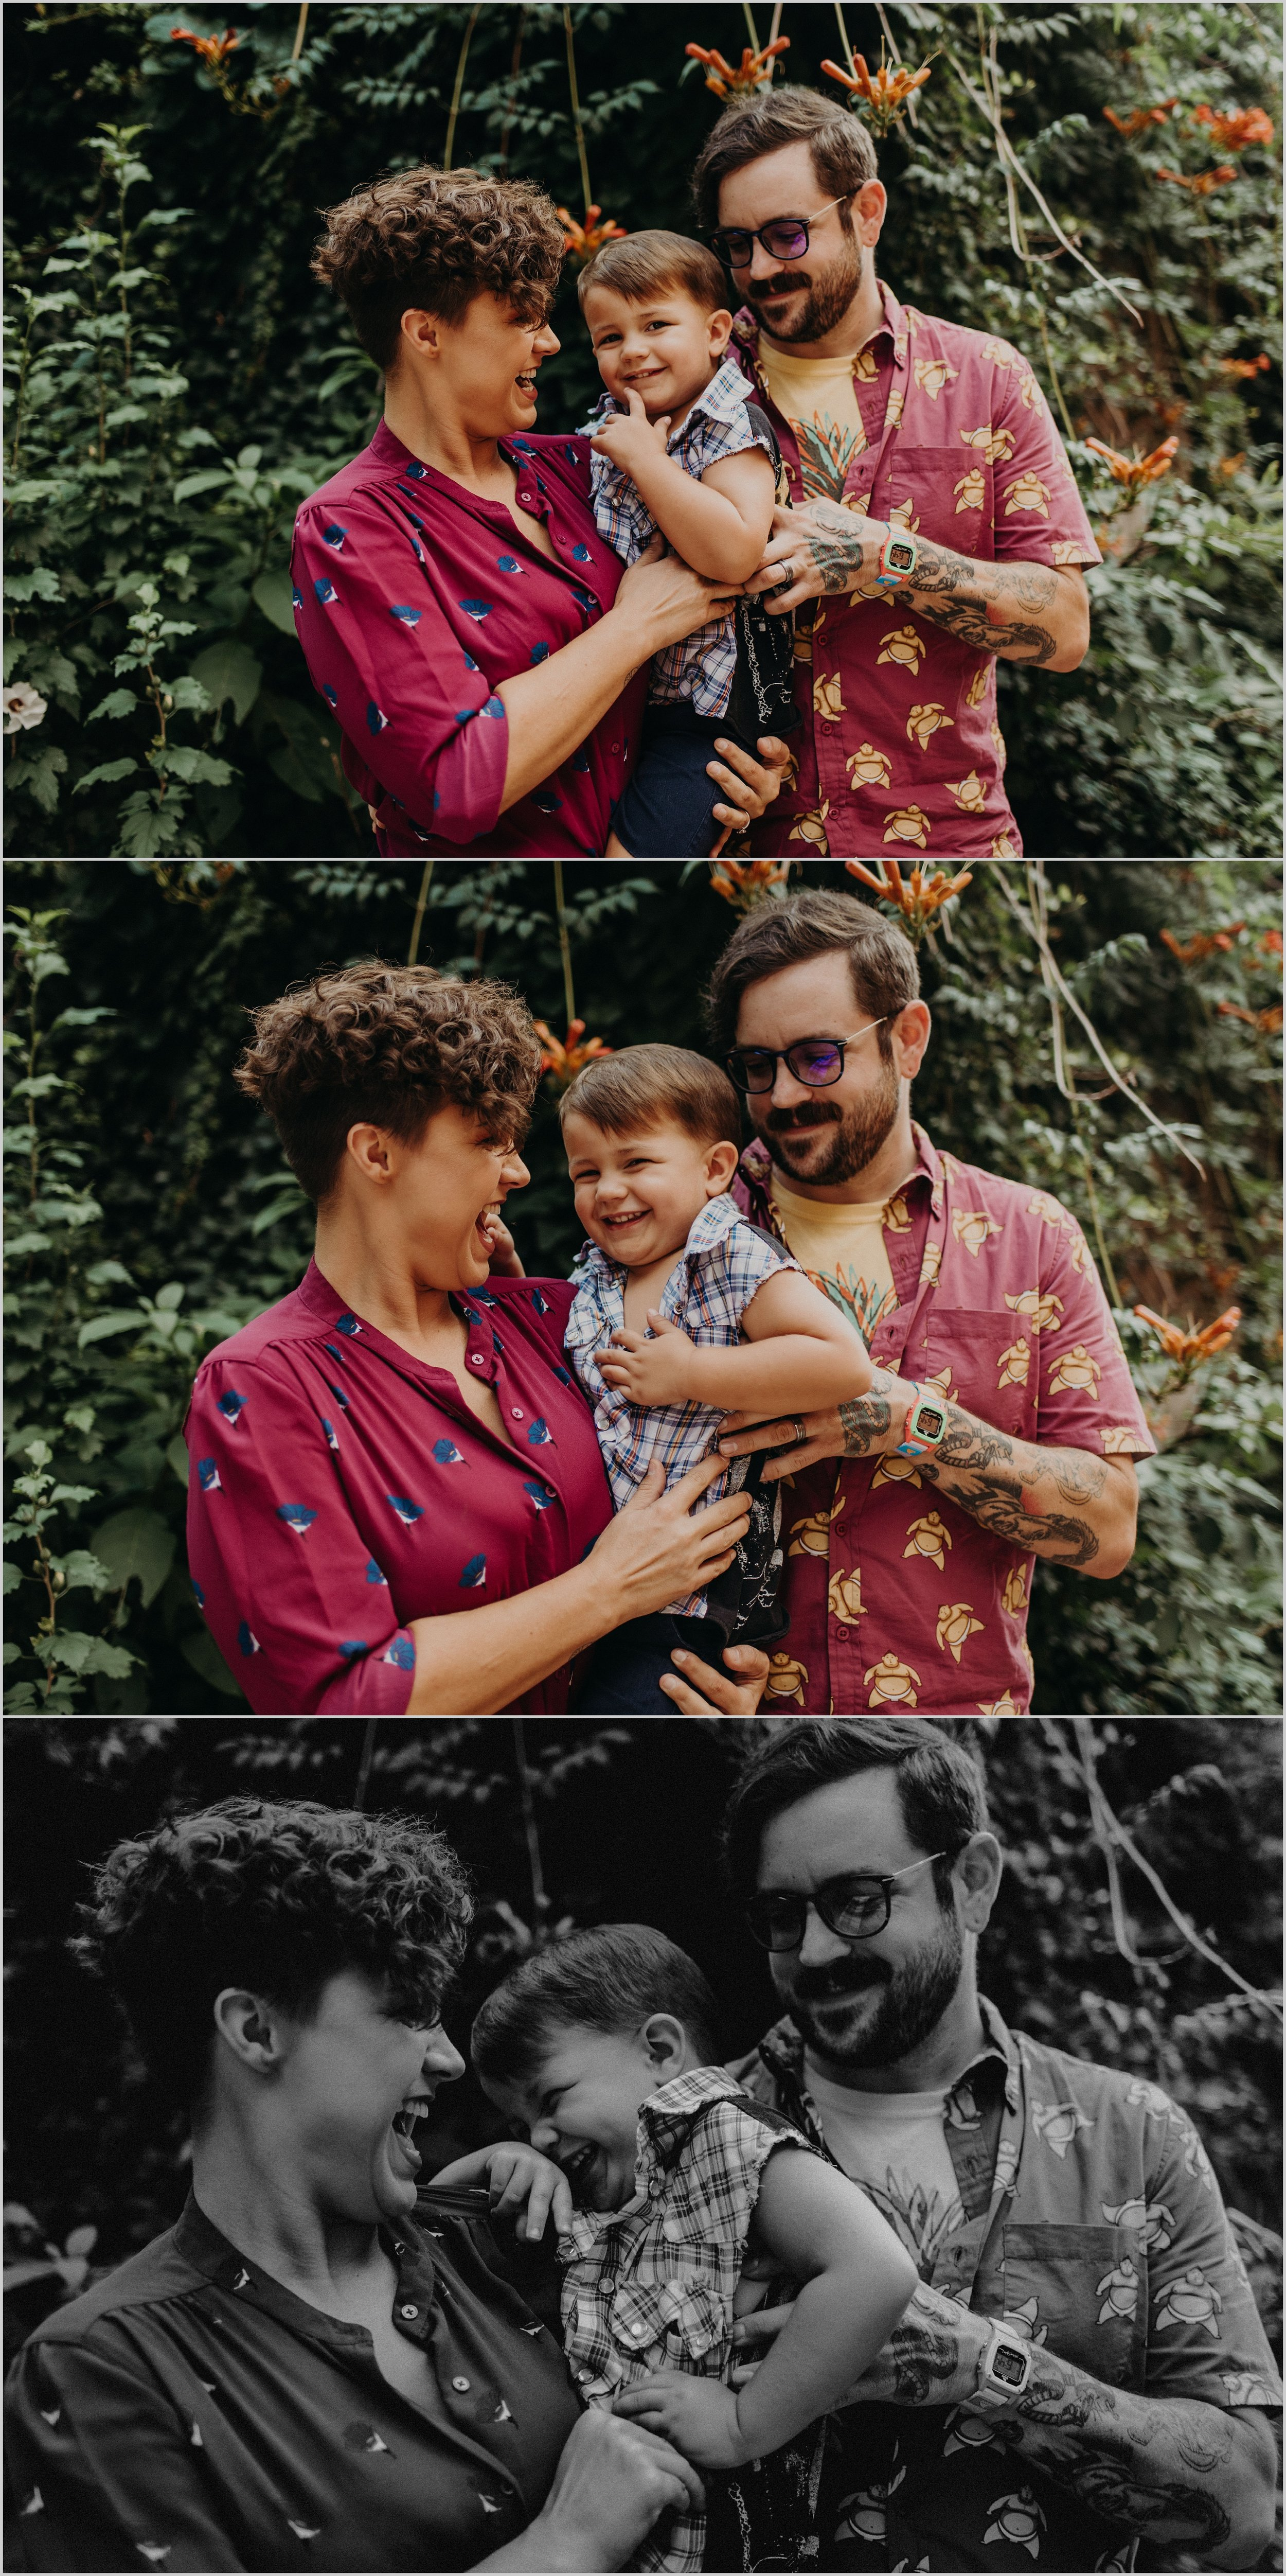 Family tickle fight during urban photo session